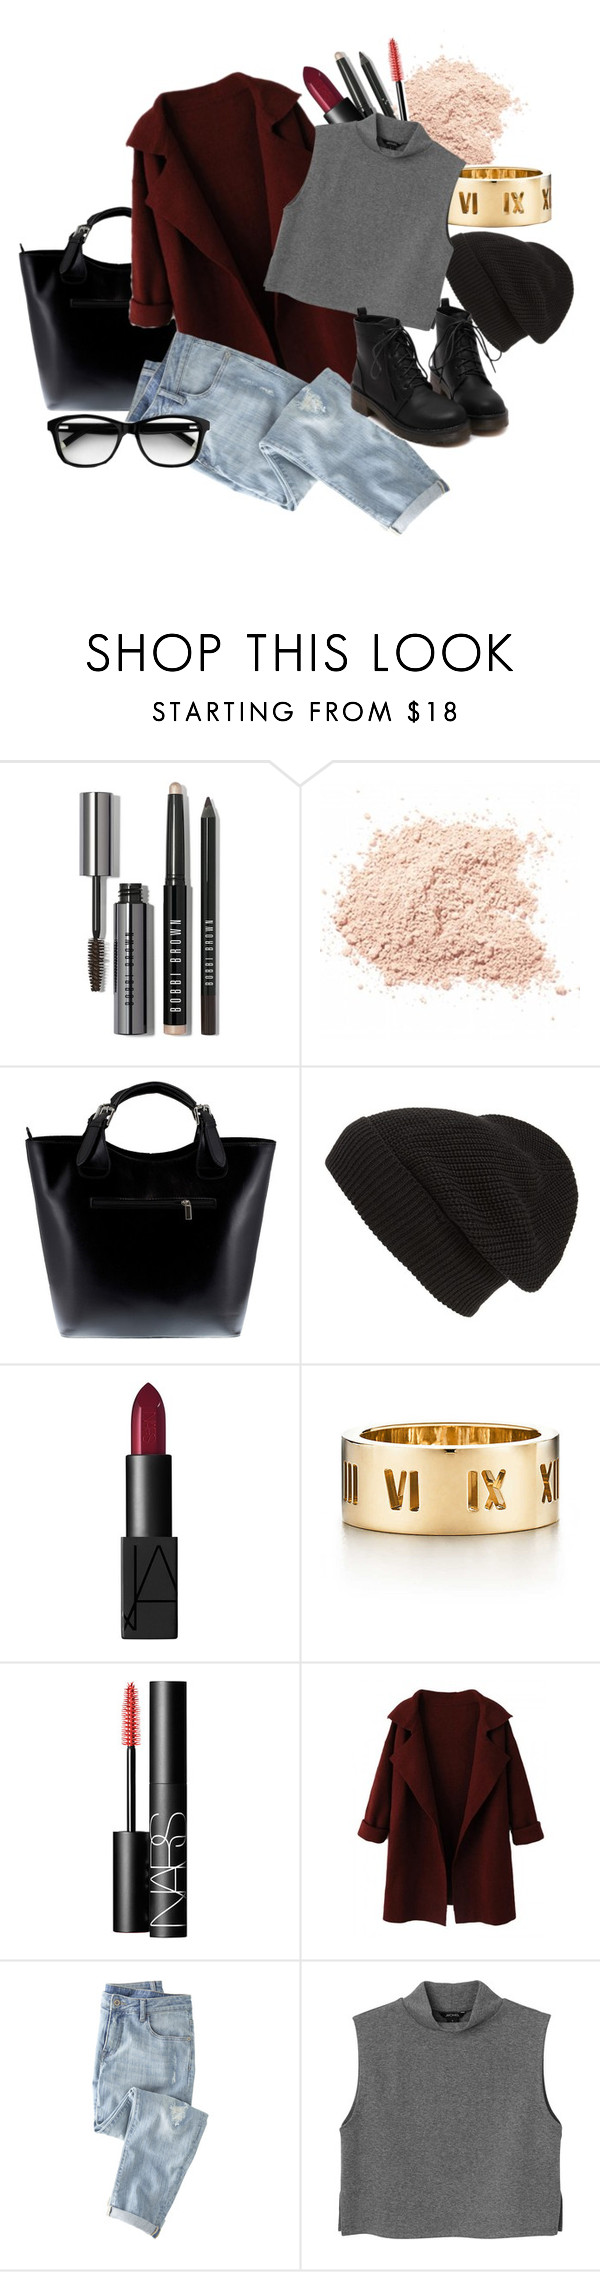 """""""City days :)"""" by aqus02 ❤ liked on Polyvore featuring Bobbi Brown Cosmetics, Massimo Castelli, Phase 3, NARS Cosmetics, Tiffany & Co., Wrap and Monki"""